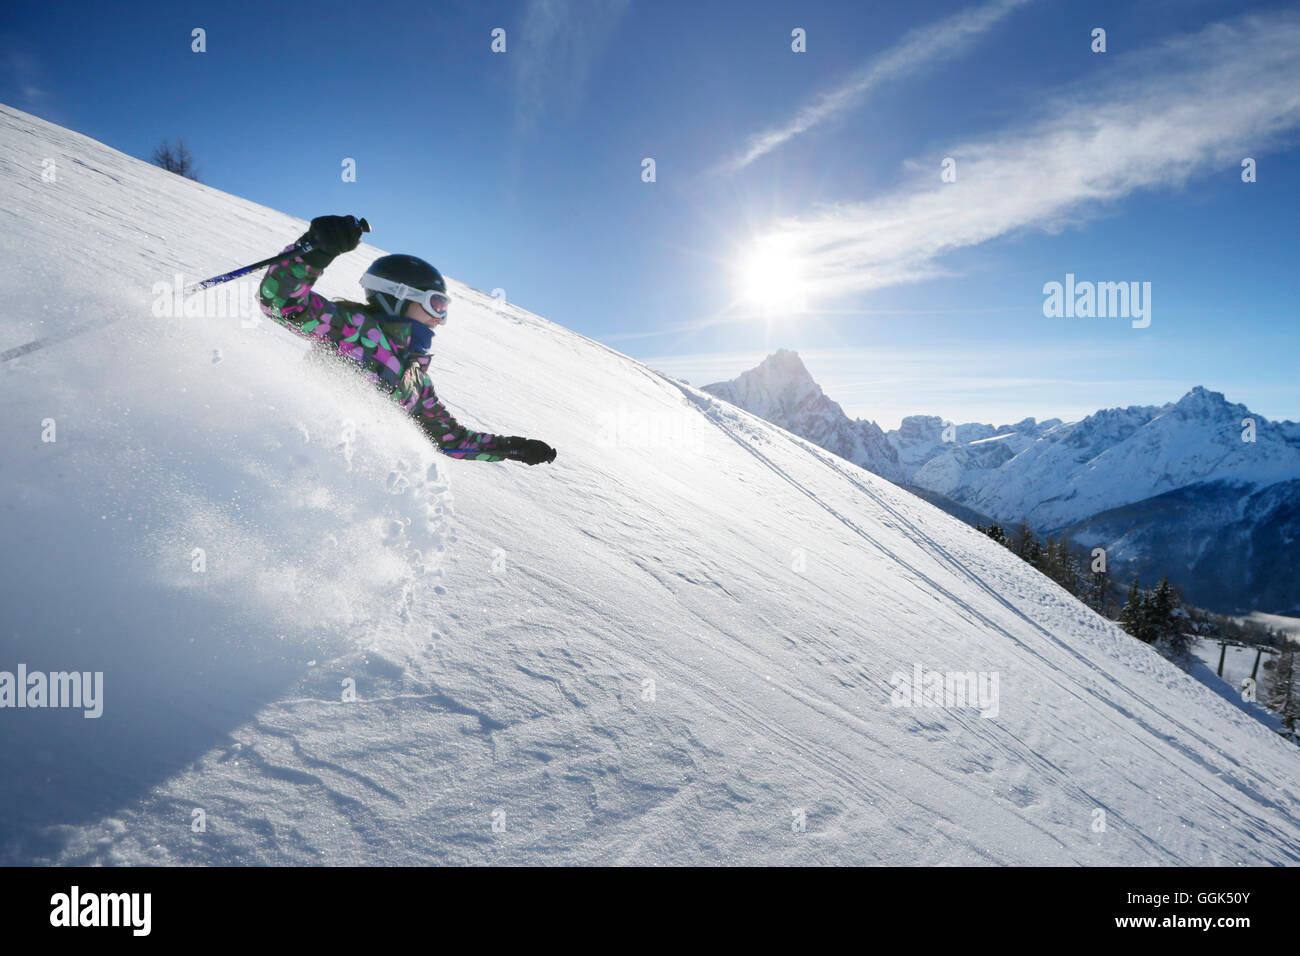 Girl downhill skiing from mount Helm (Monte Elmo), Sexten, South Tyrol, Italy - Stock Image